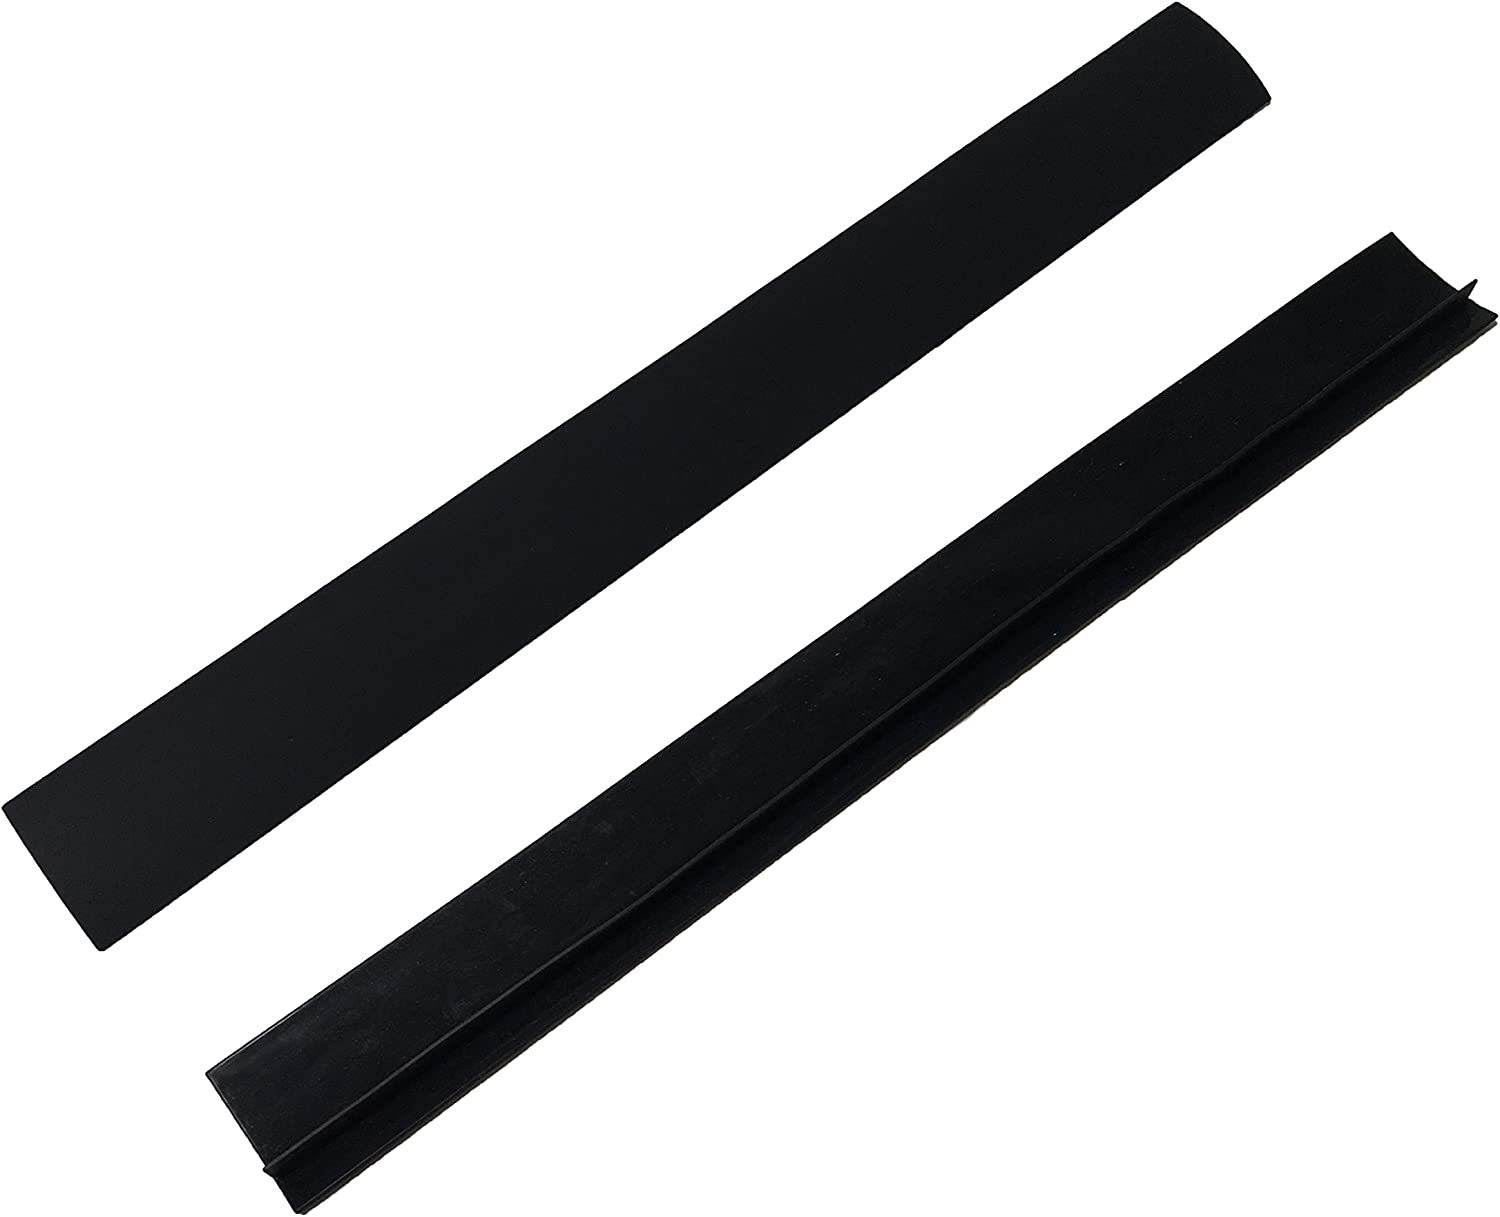 Silicone Home & Stove Counter Gap Covers - Black (Set of 2)